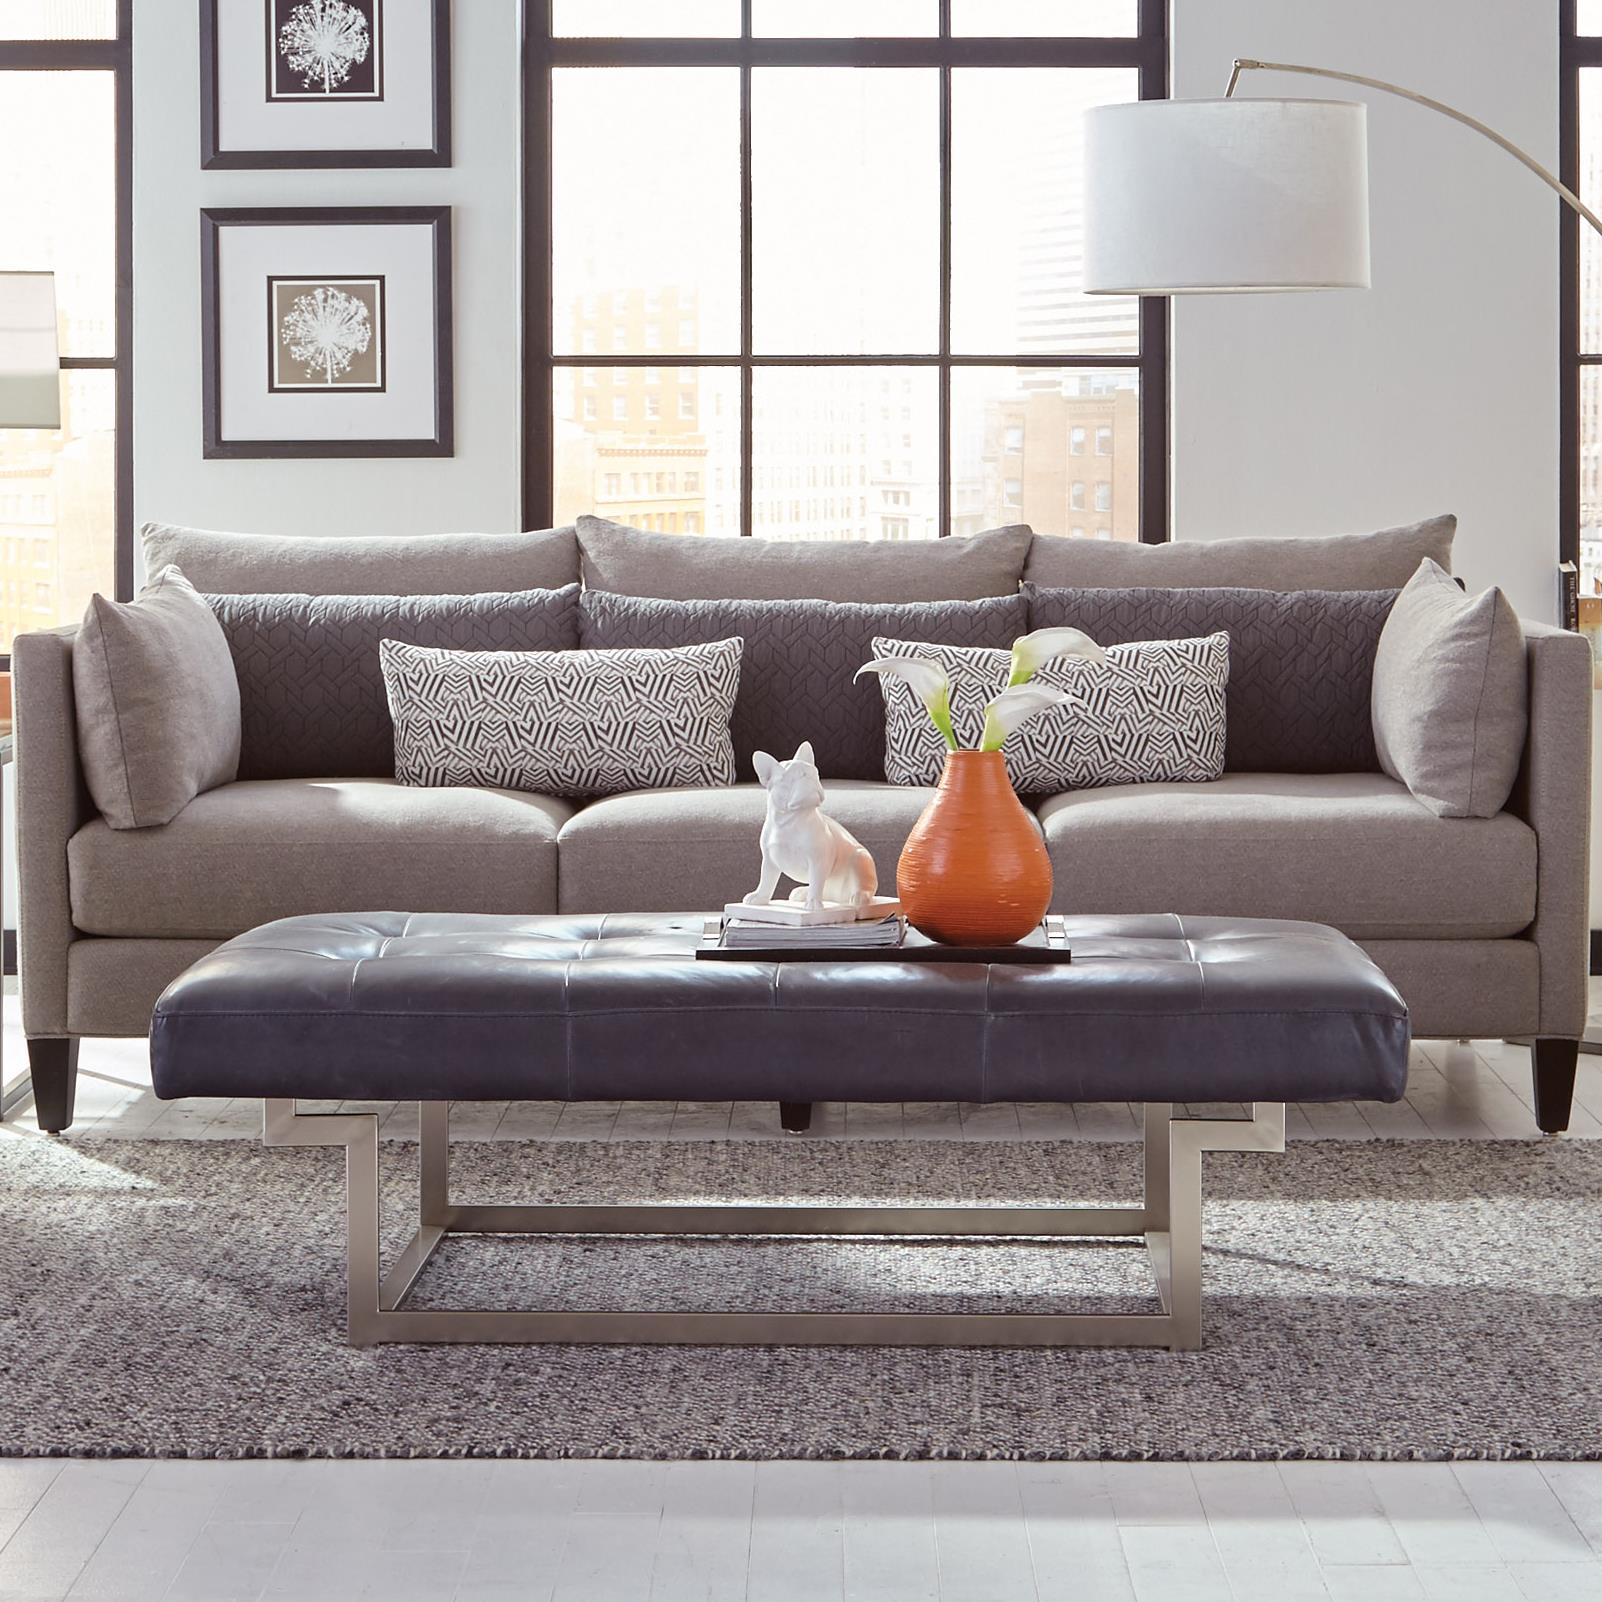 Marlo Furniture Living Room Jonathan Louis Windsor Transitional Estate Sofa With Tuxedo Arms